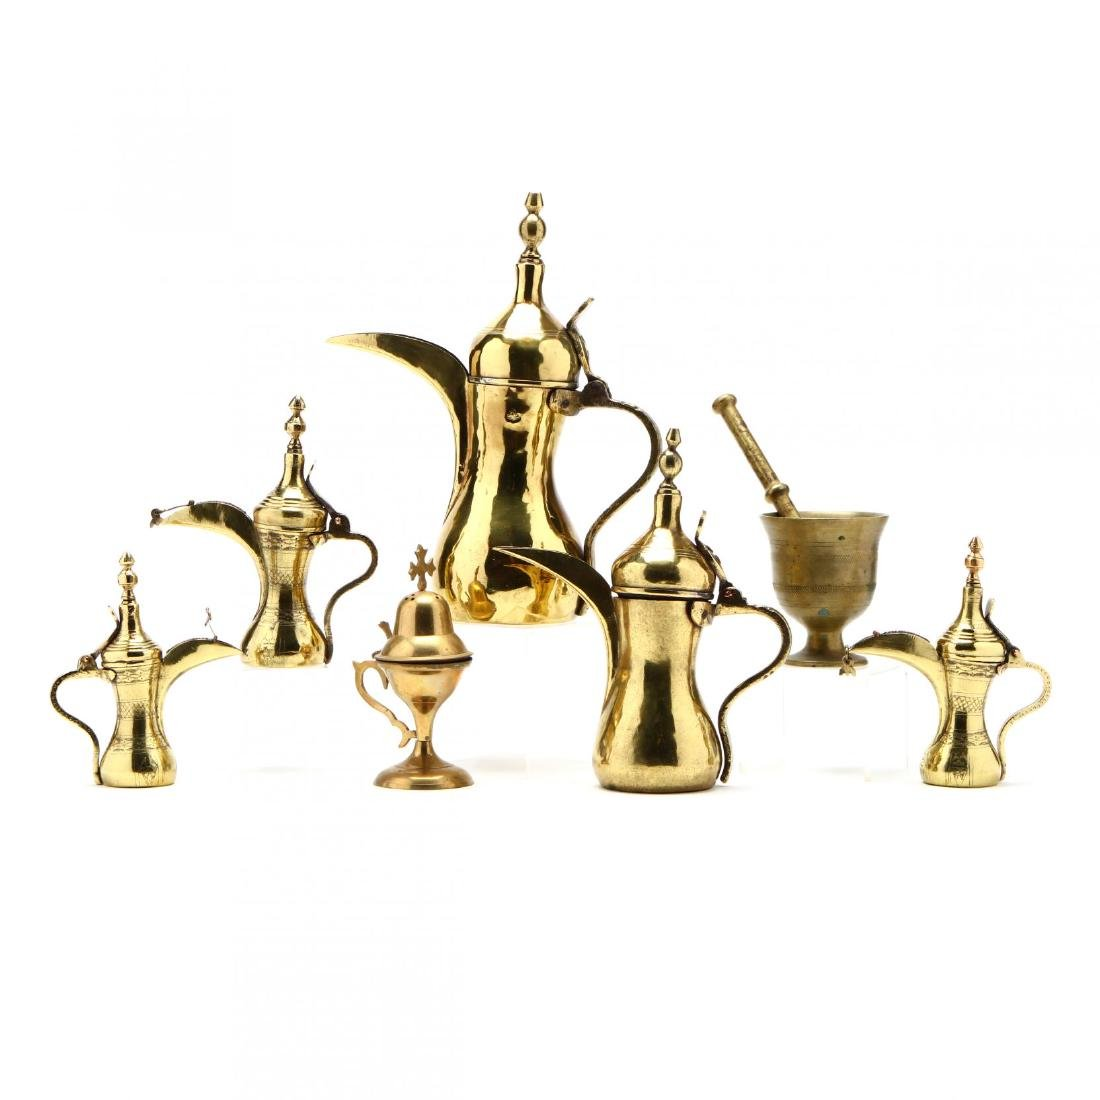 Group of Brass Vessels - 2